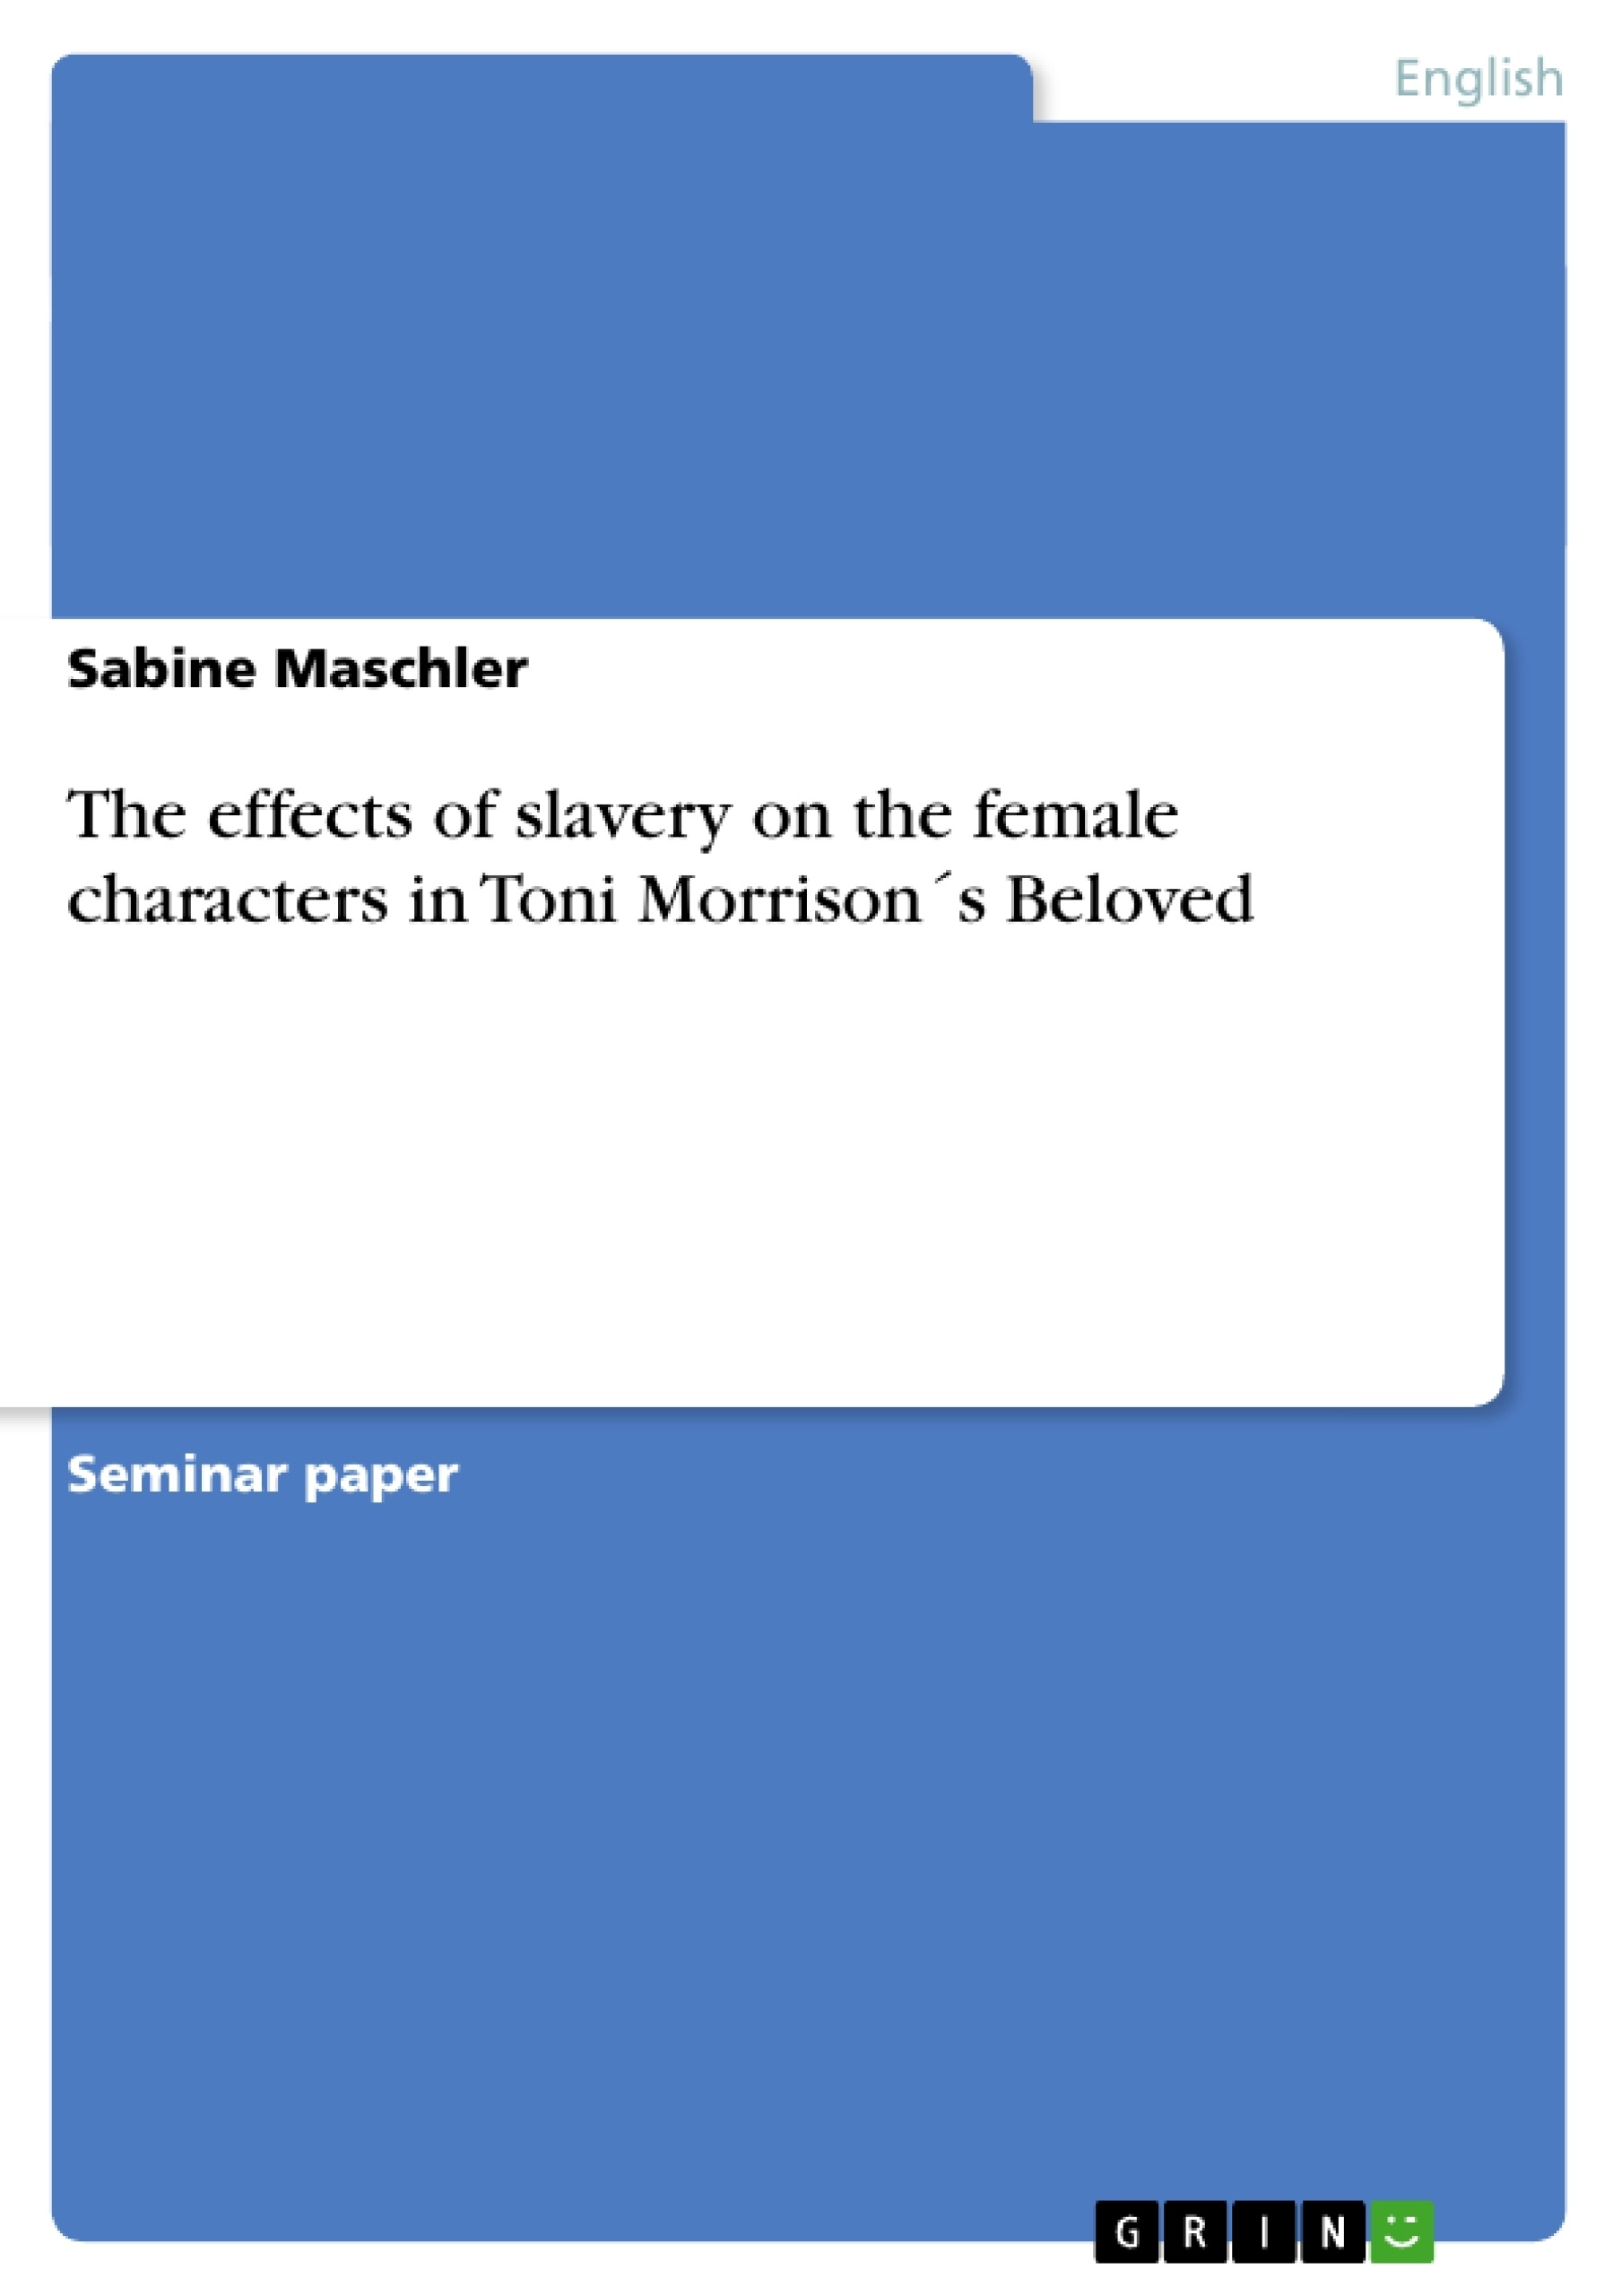 beloved - toni morrison research paper Toni morrison the issue of read this research paper and 48 african-american writers signed a letter protesting that her novel beloved was.